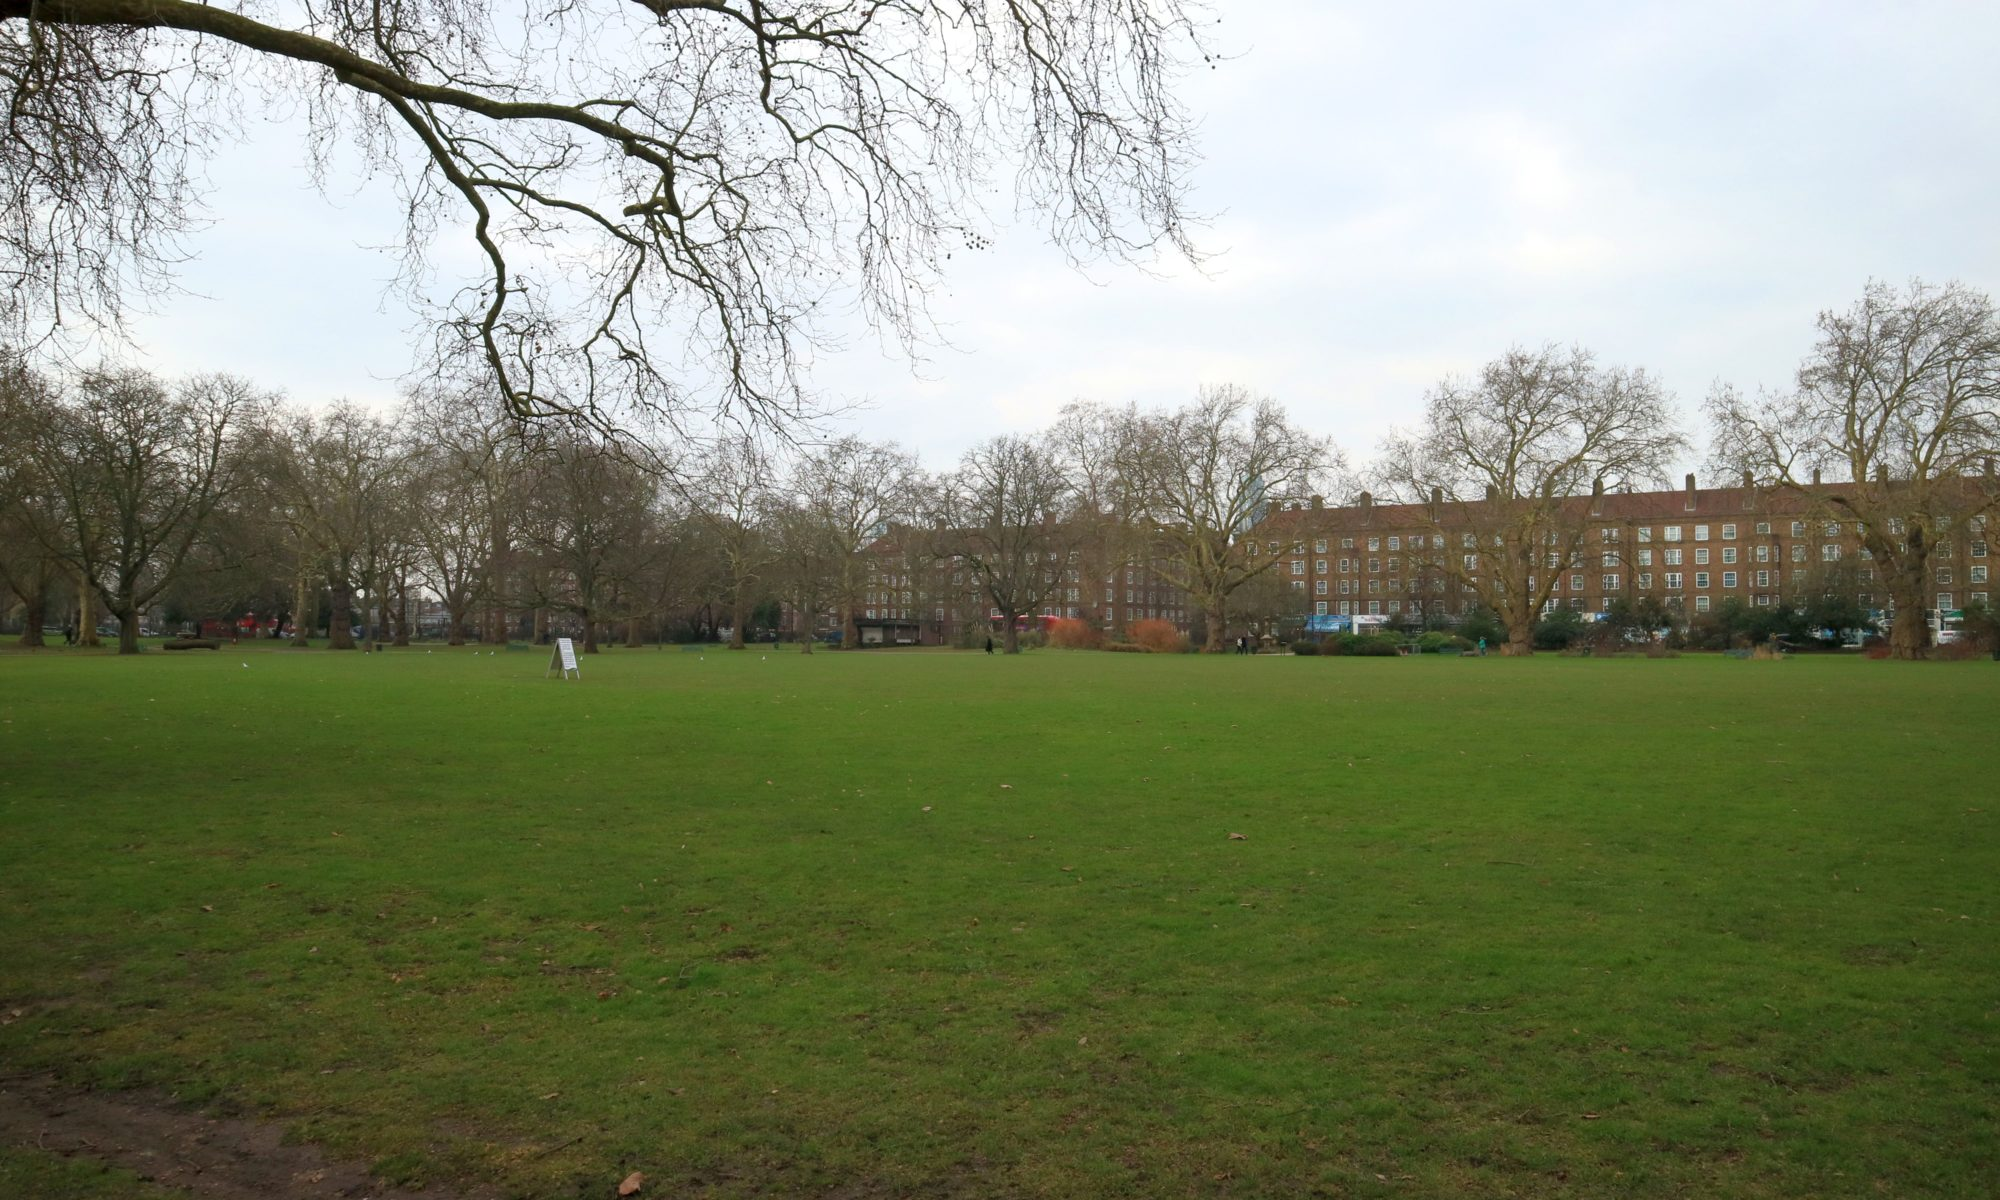 Kennington Park, 22 Feb 2018